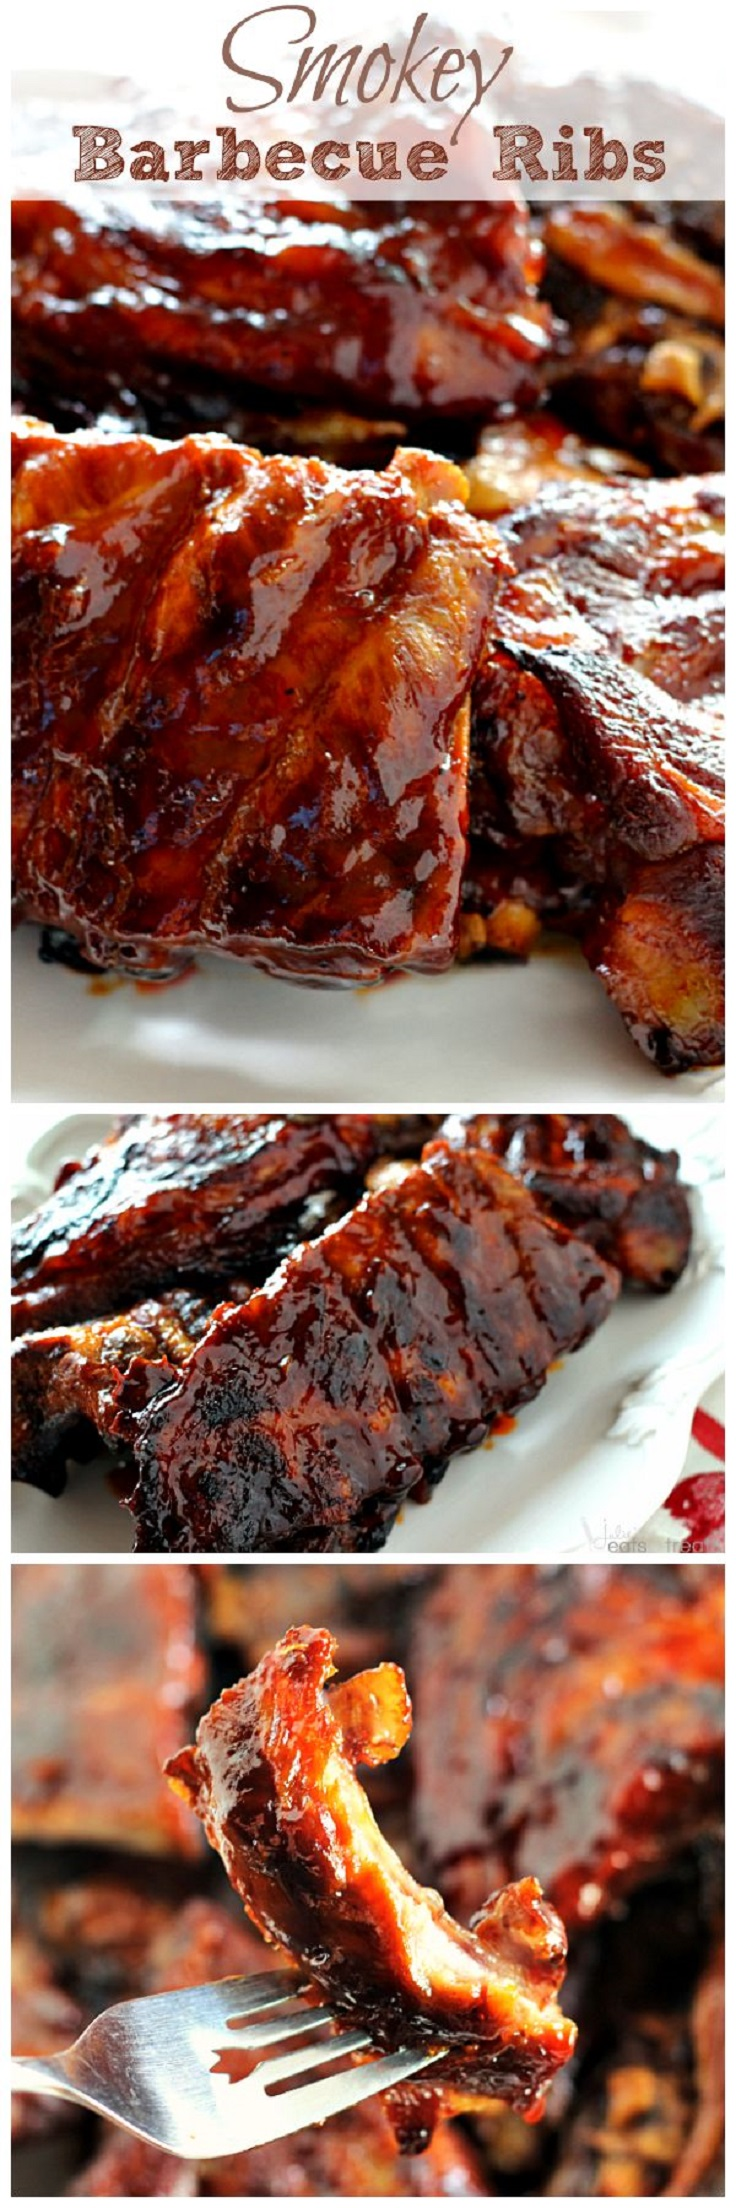 Smokey-Barbecue-Ribs